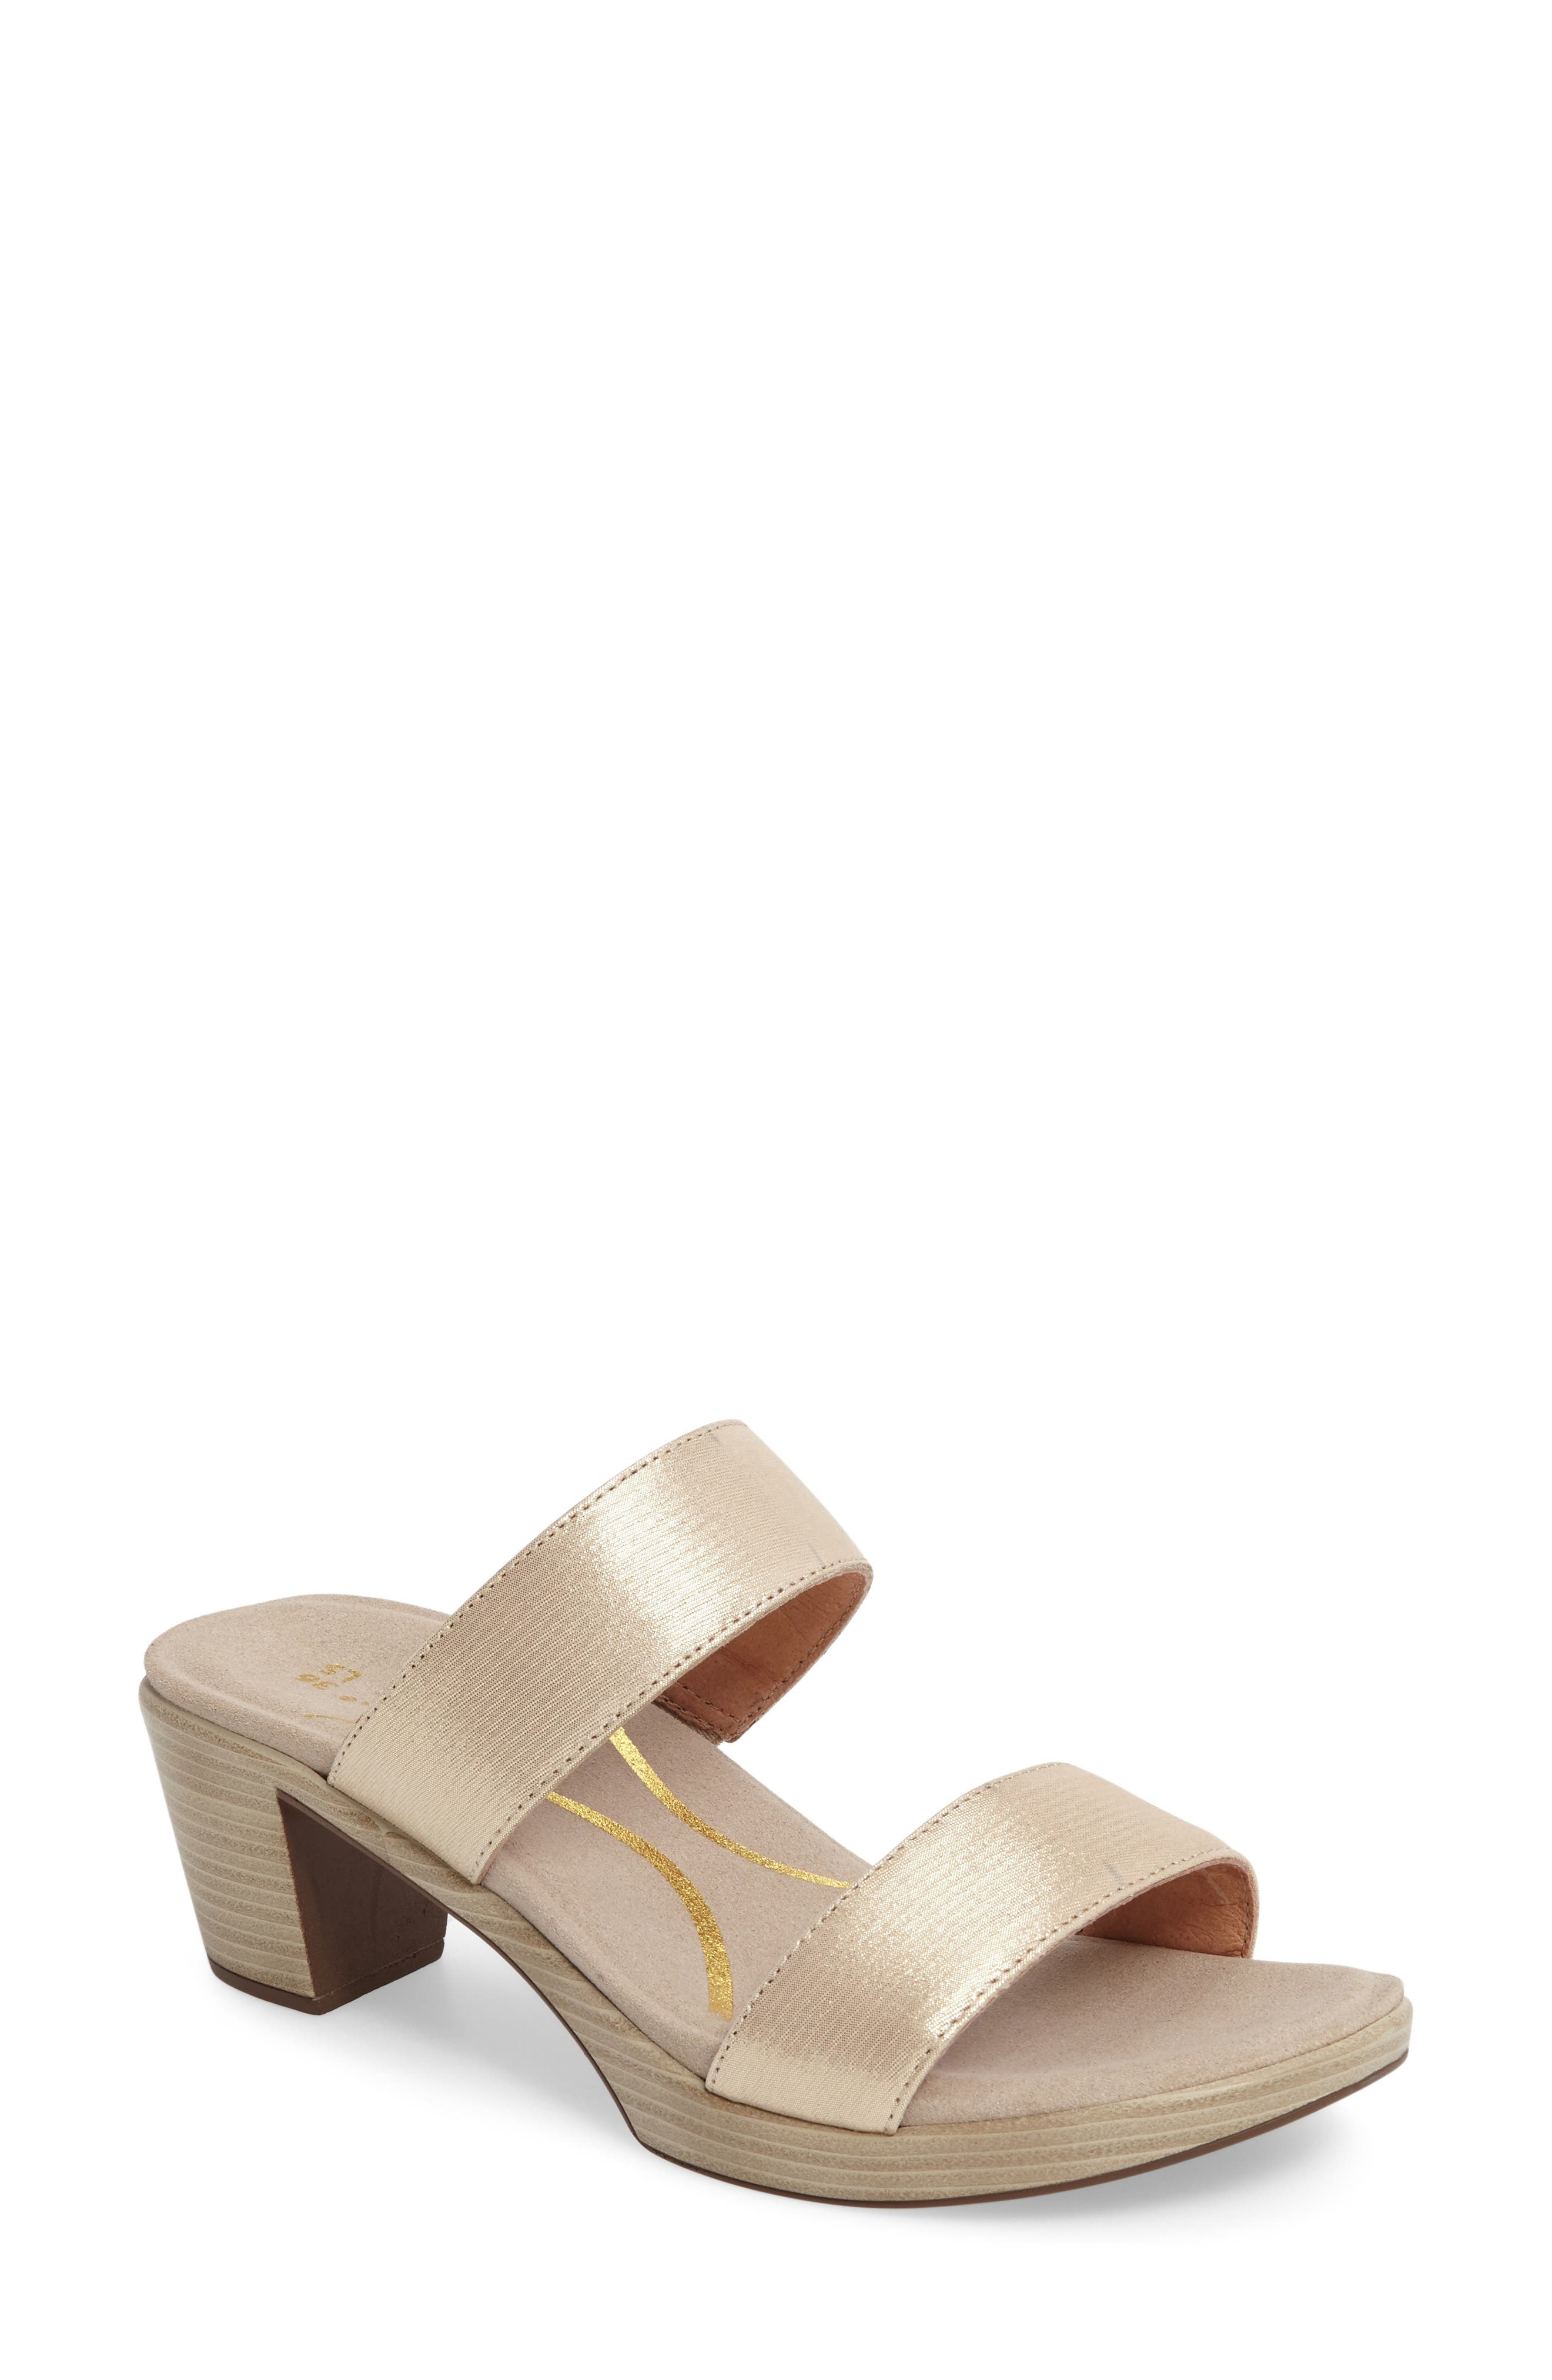 Fate Platform Sandal,                         Main,                         color, GOLD THREADS LEATHER